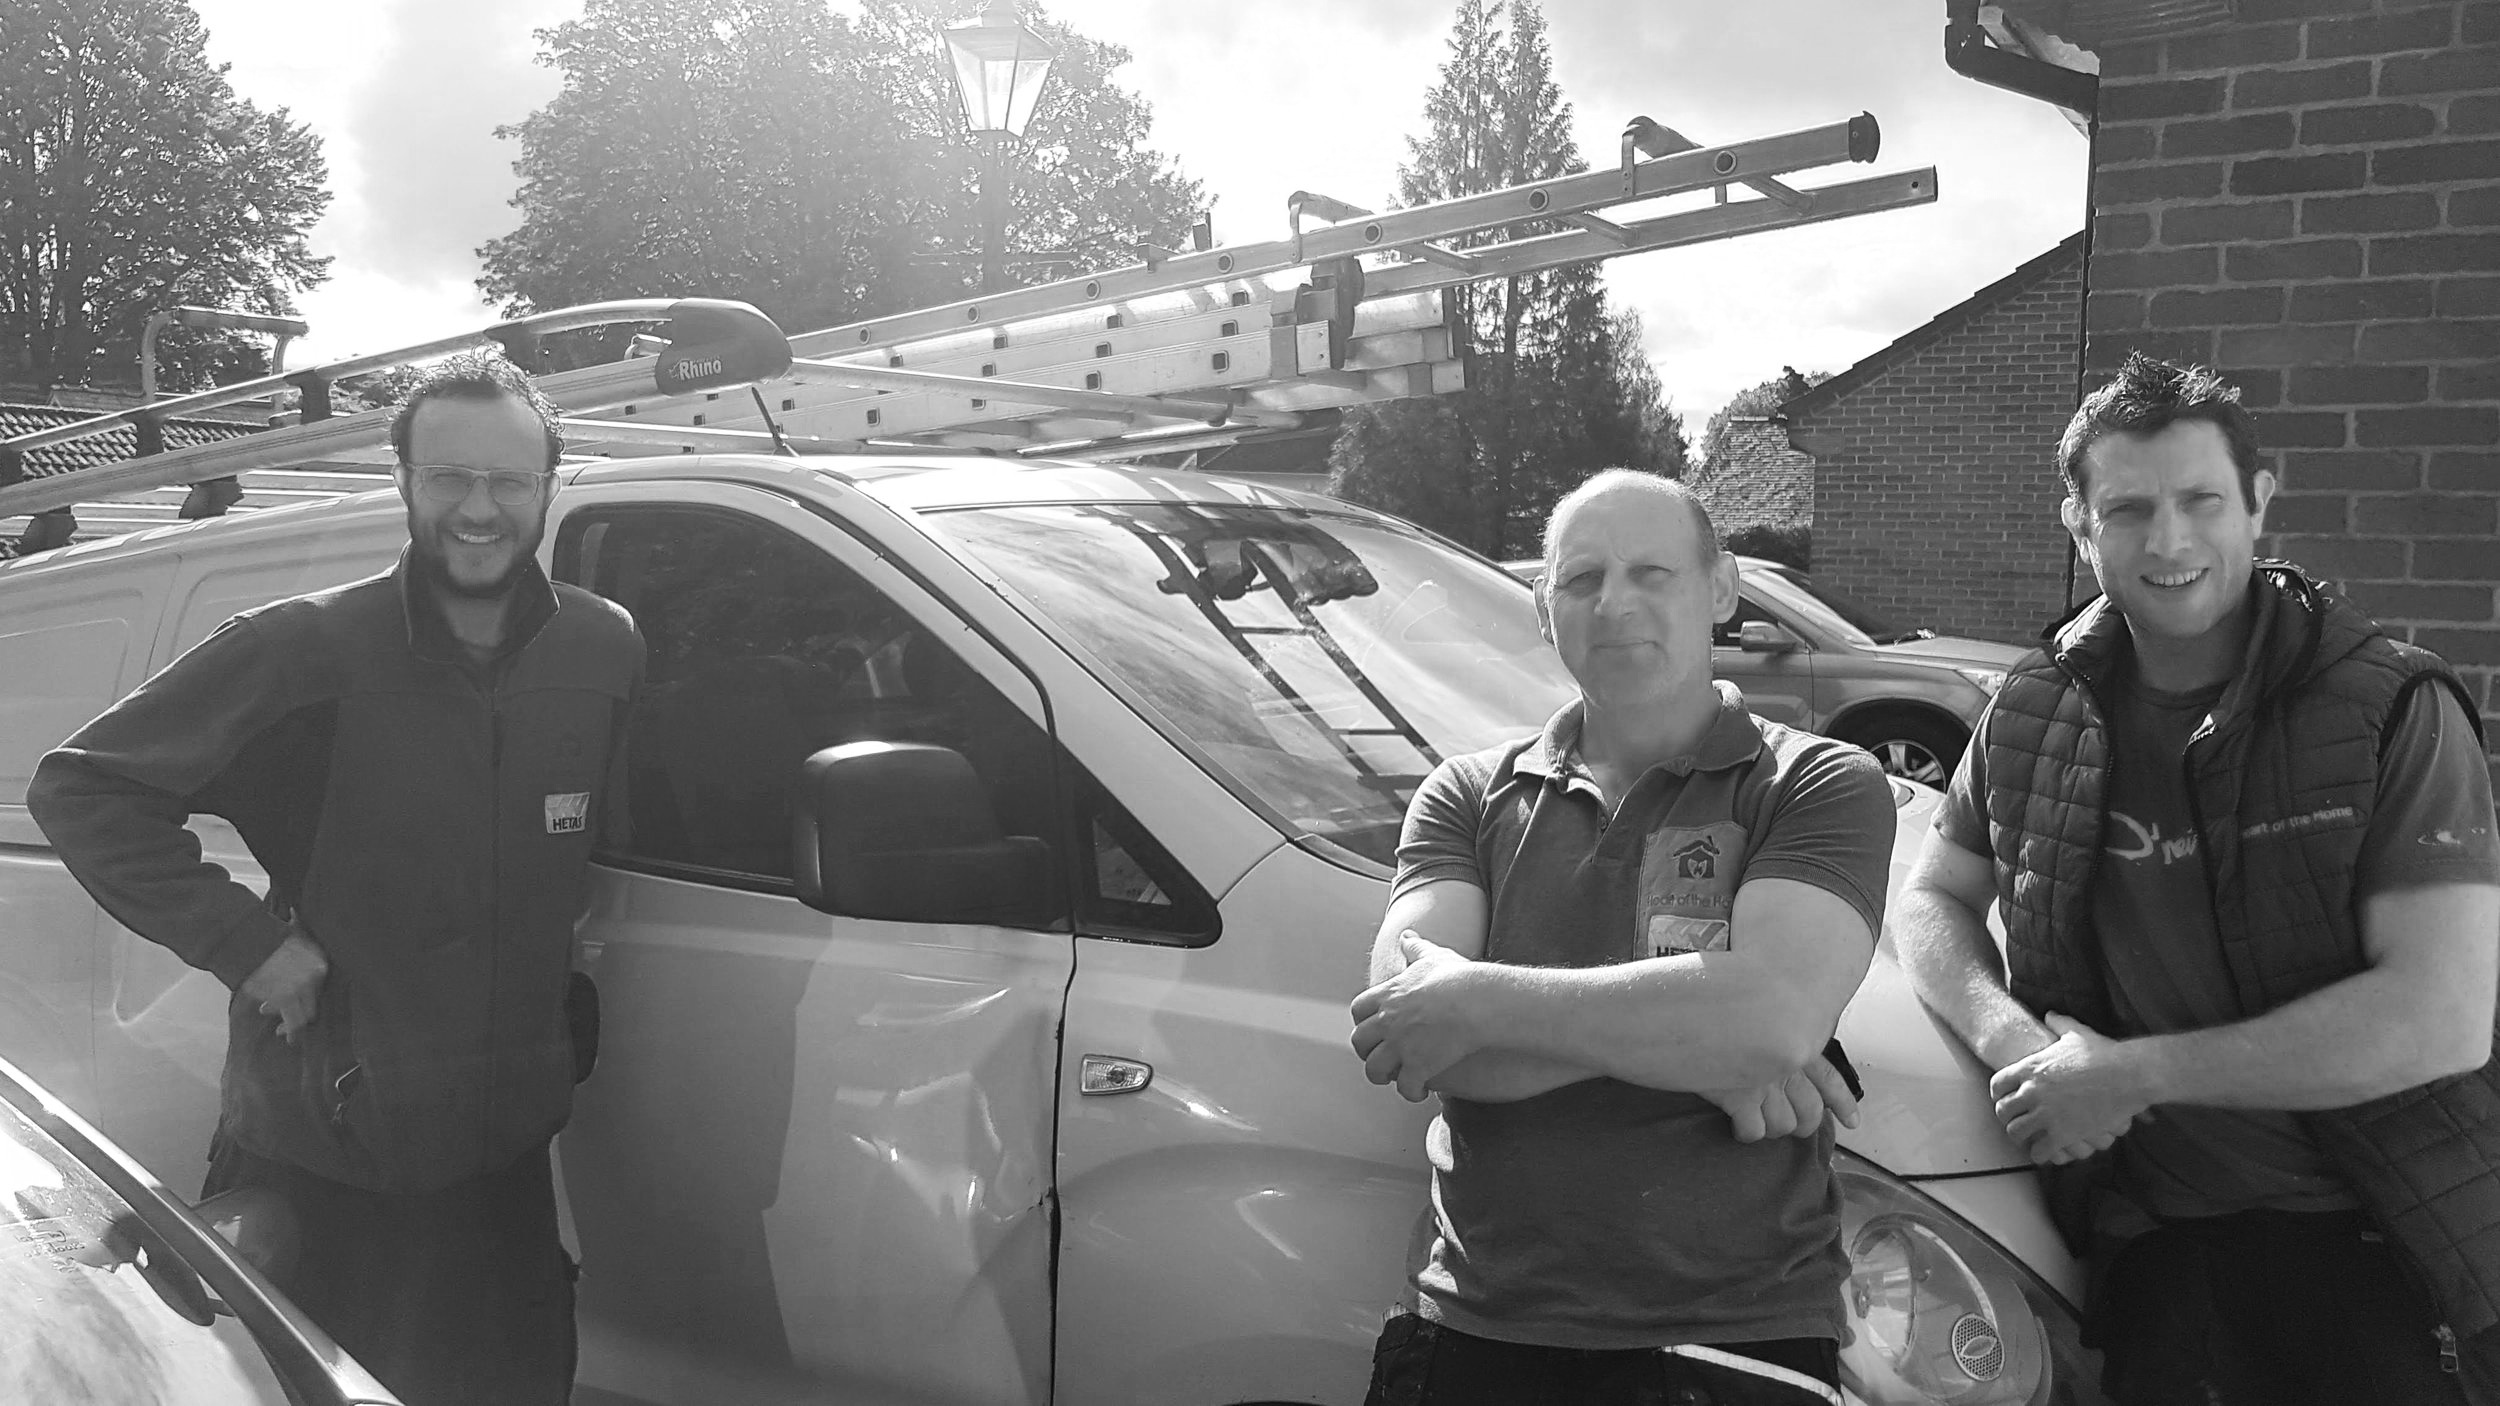 Piers Villet (left) and his team are your Woodburner installer specialists in the Salisbury area.